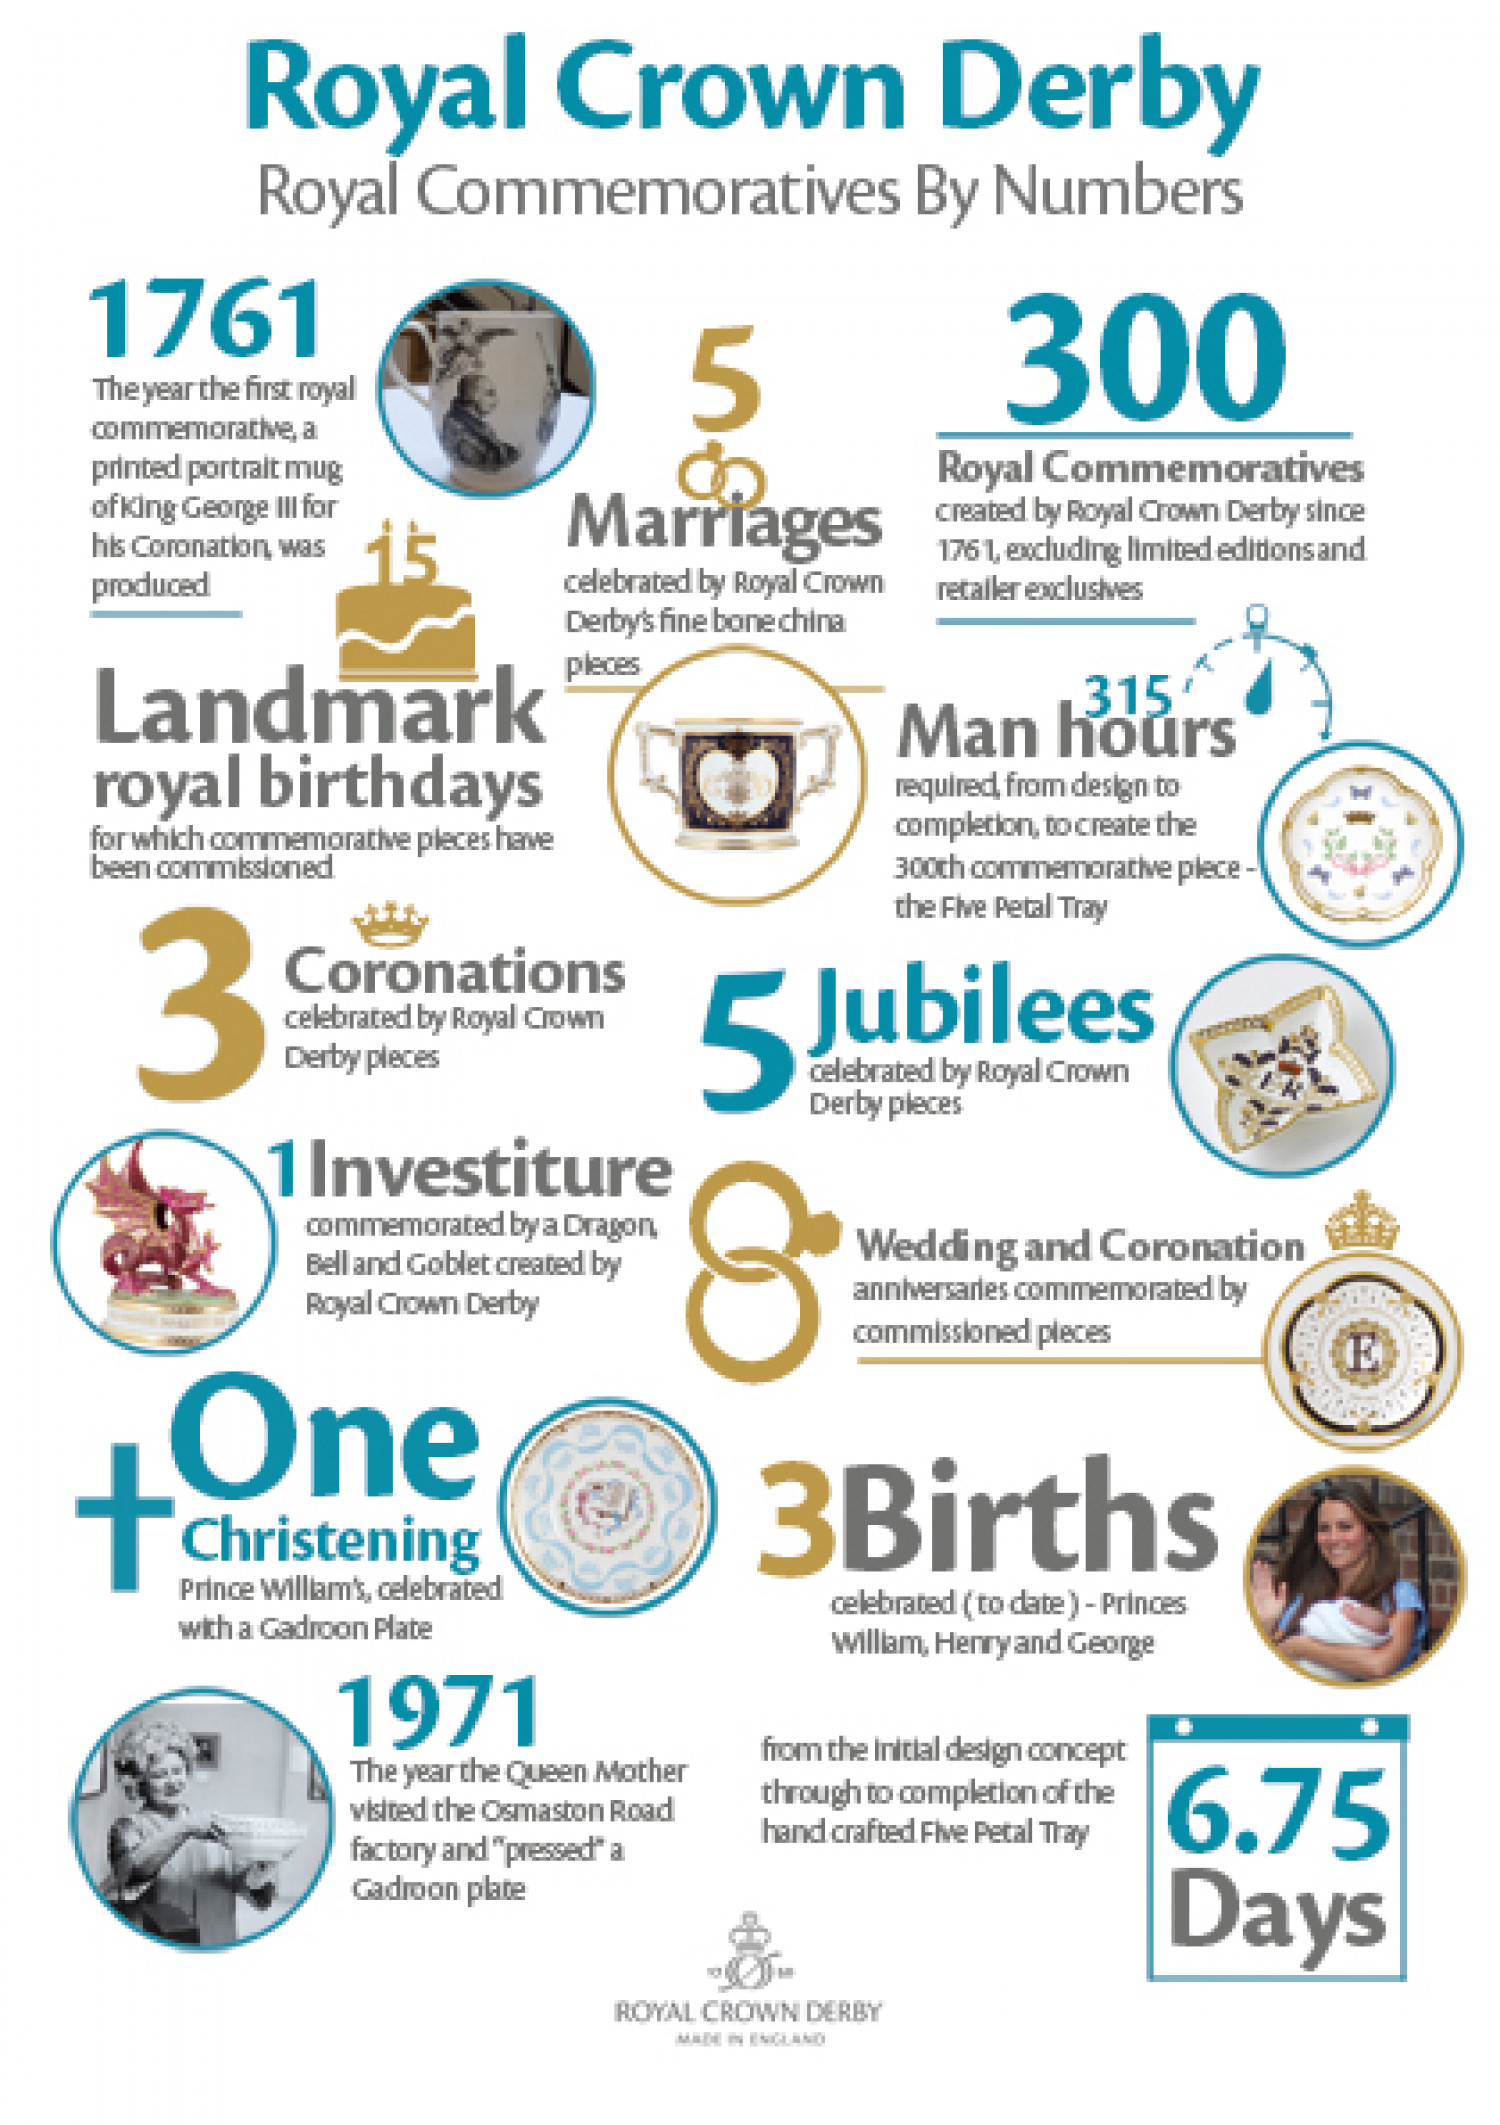 Royal Crown Derby Royal Commemoratives By Number Infographic